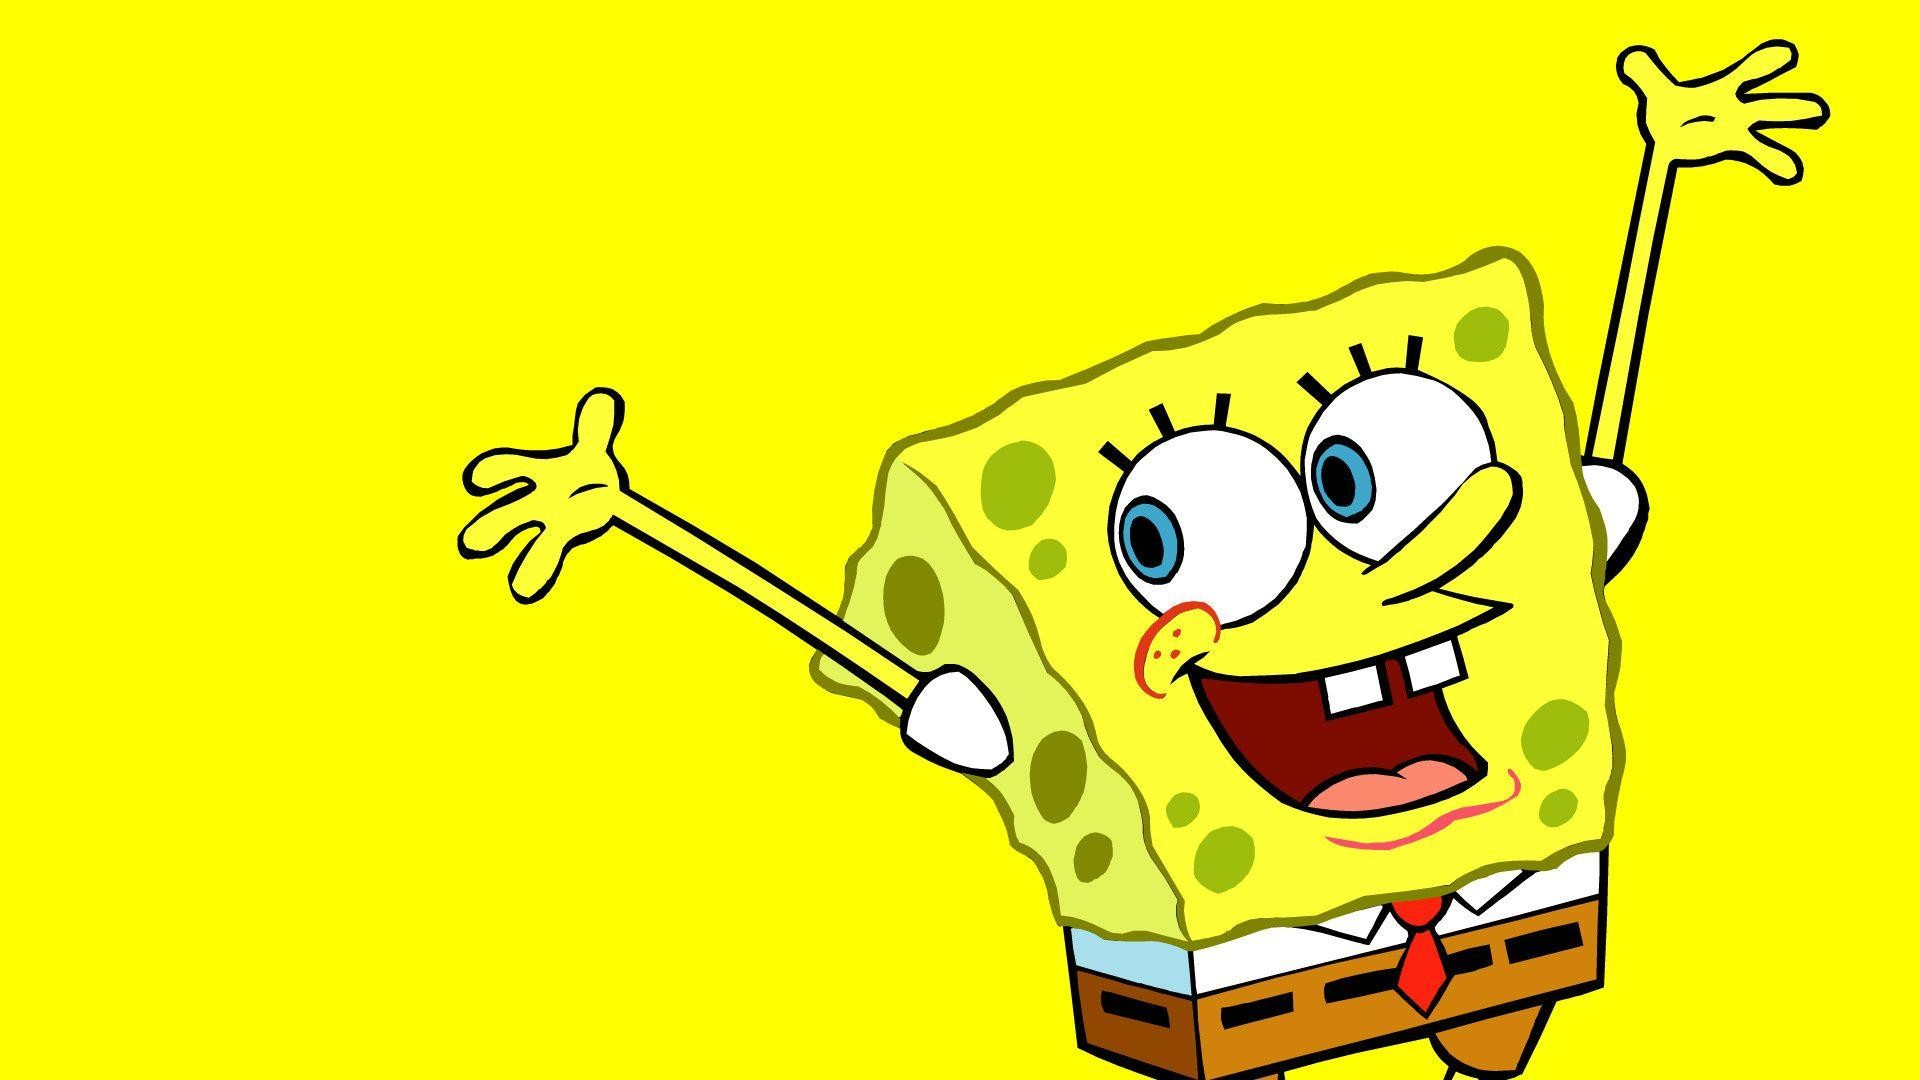 Res: 1920x1080, Funny Spongebob Wallpaper HD Background - ToObjects.